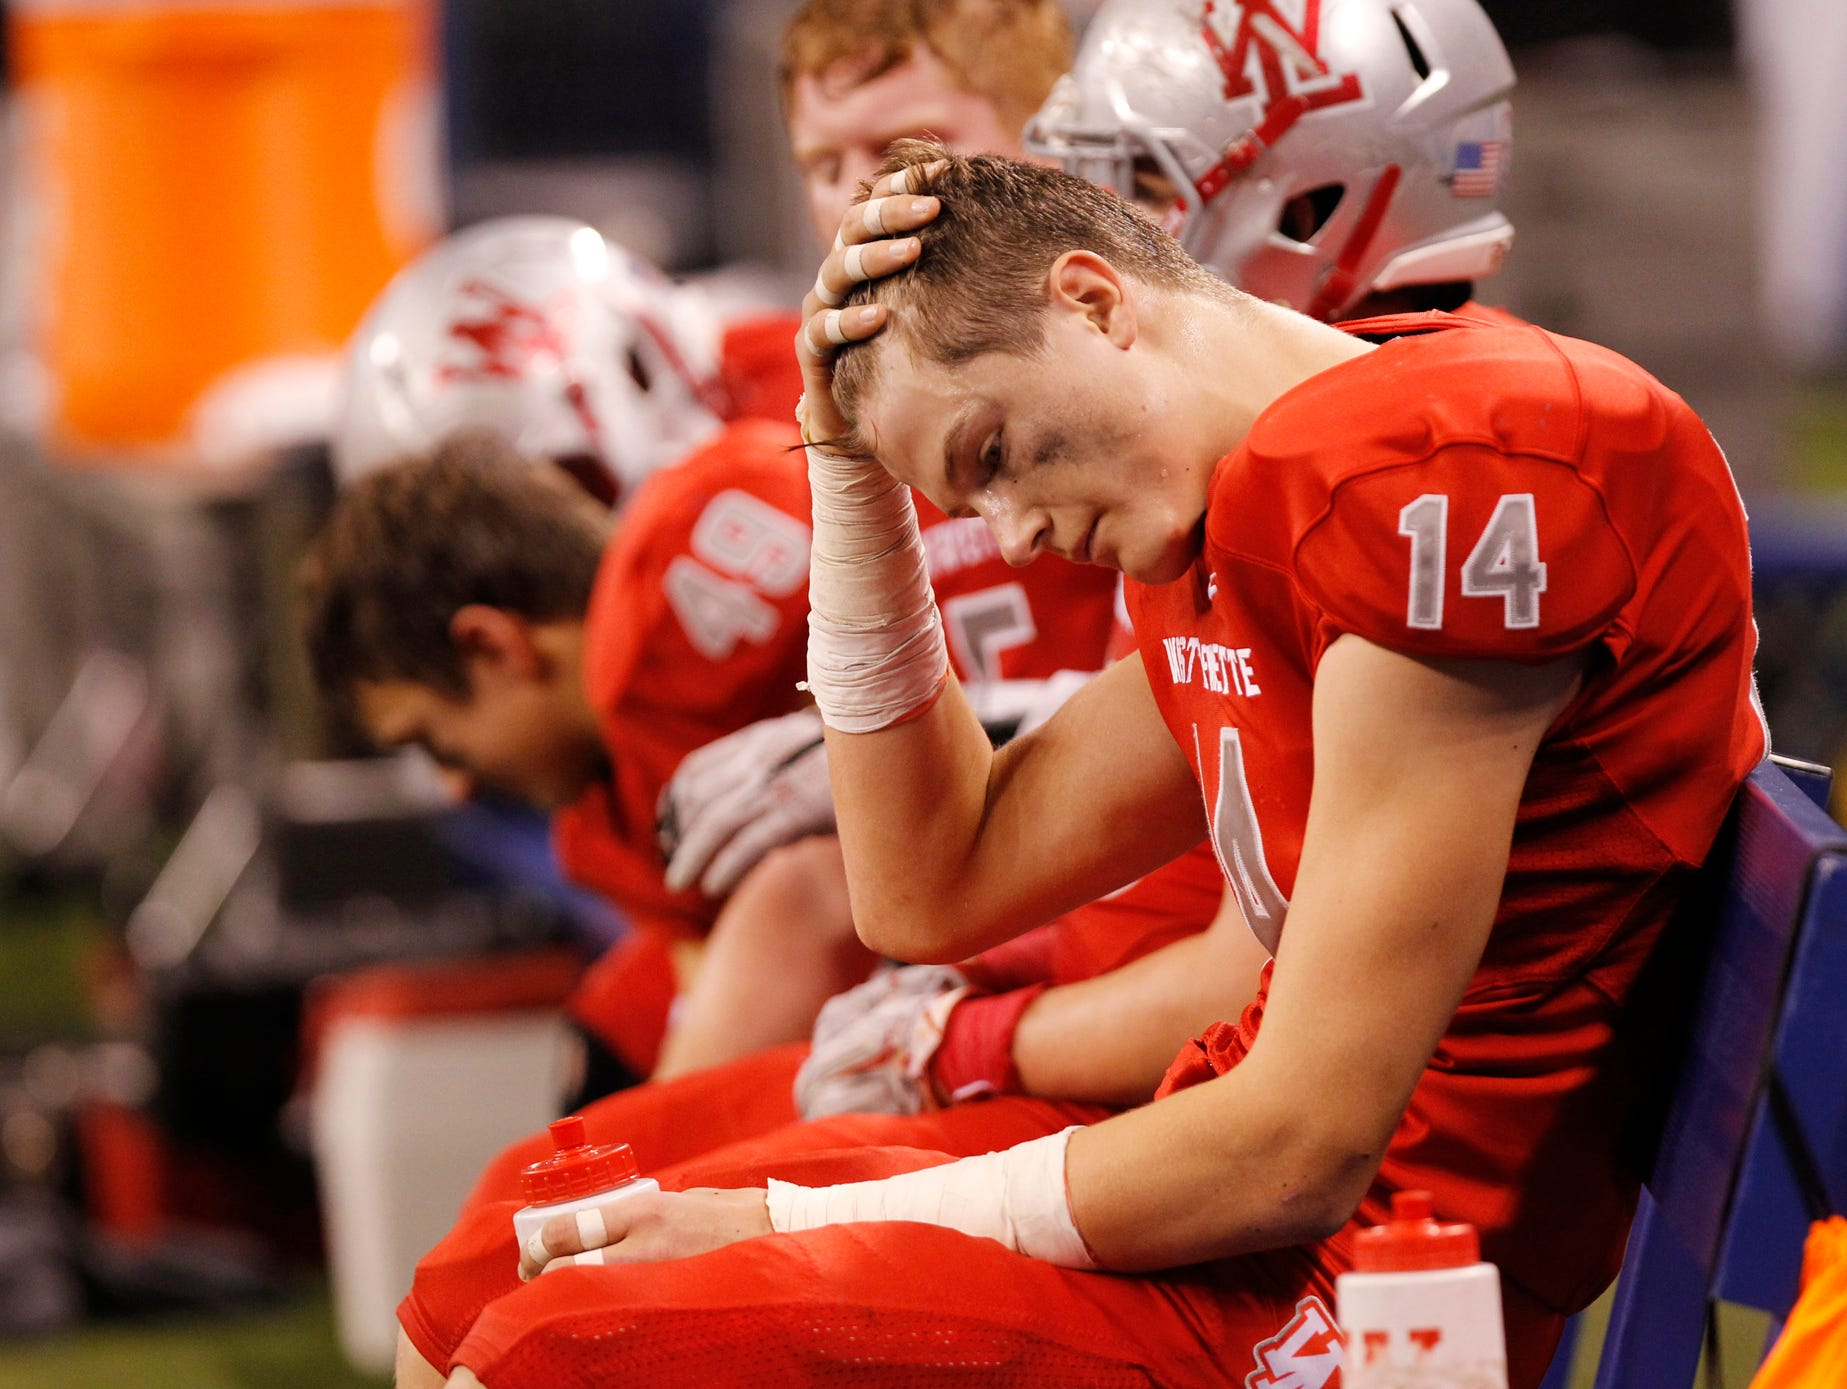 West Lafayette's Frank Bodi rubs his head as the clock winds down against Bishop Chatard in the Class 3A state finals Friday, November 27, 2015, at Lucas Oil Stadium in Indianapolis. West Lafayette fell to Bishop Chatard 31-7.